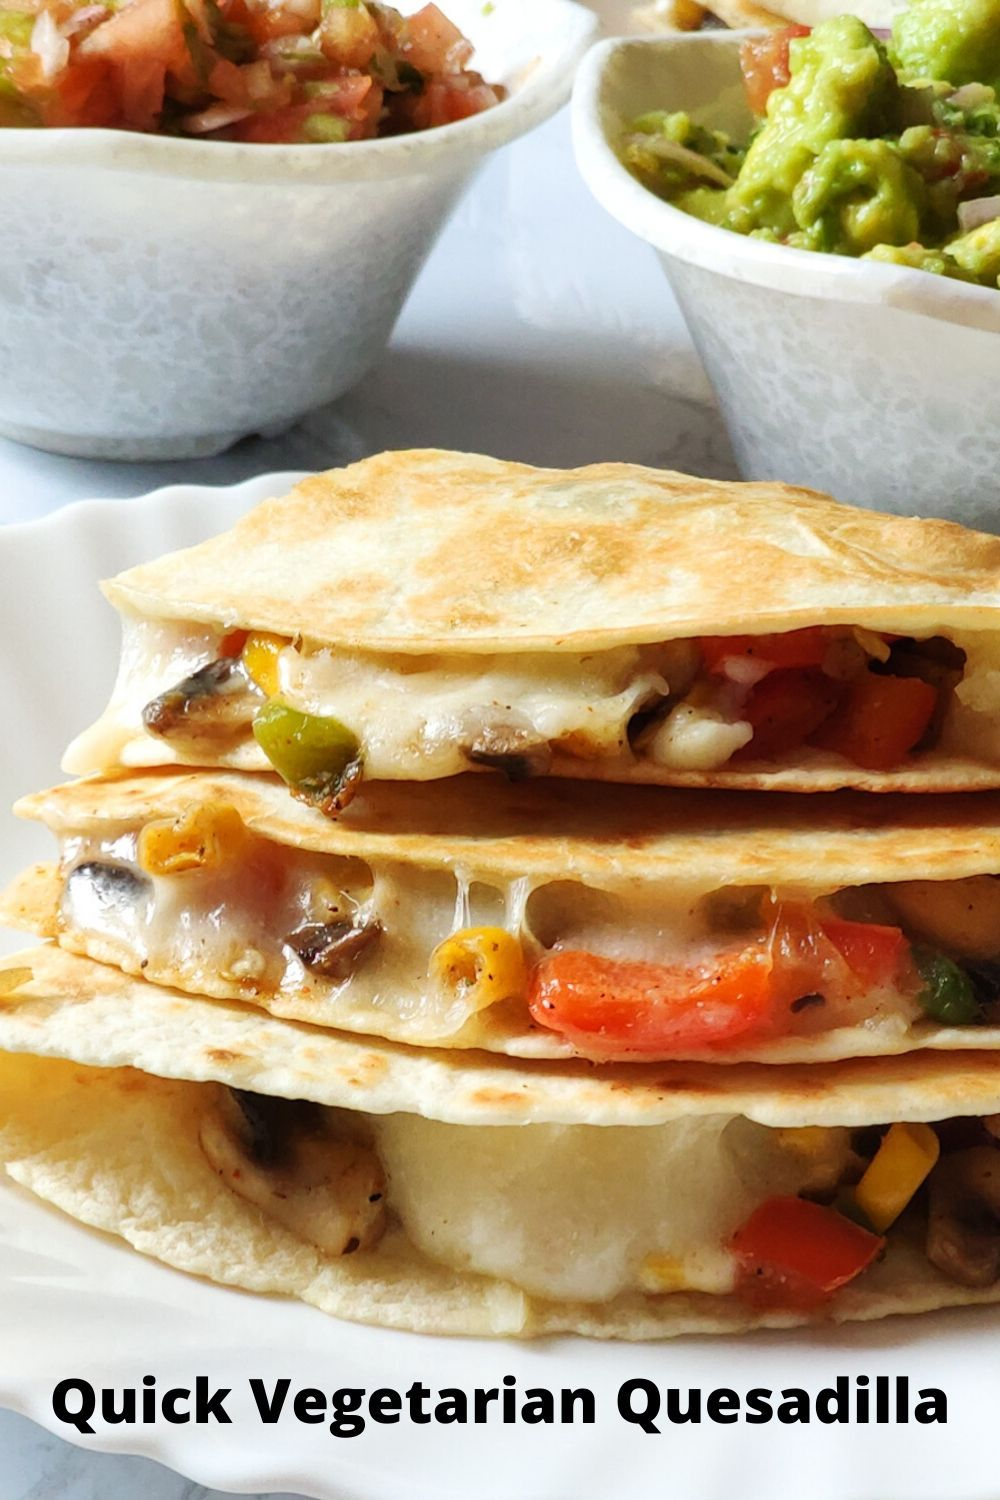 Vegetable Quesadilla Recipe Vegetarian Quesadilla Veg Quesadilla Recipe Vegetable Quesadilla Recipes Mexican Food Recipes Easy Quesadilla Recipes Easy